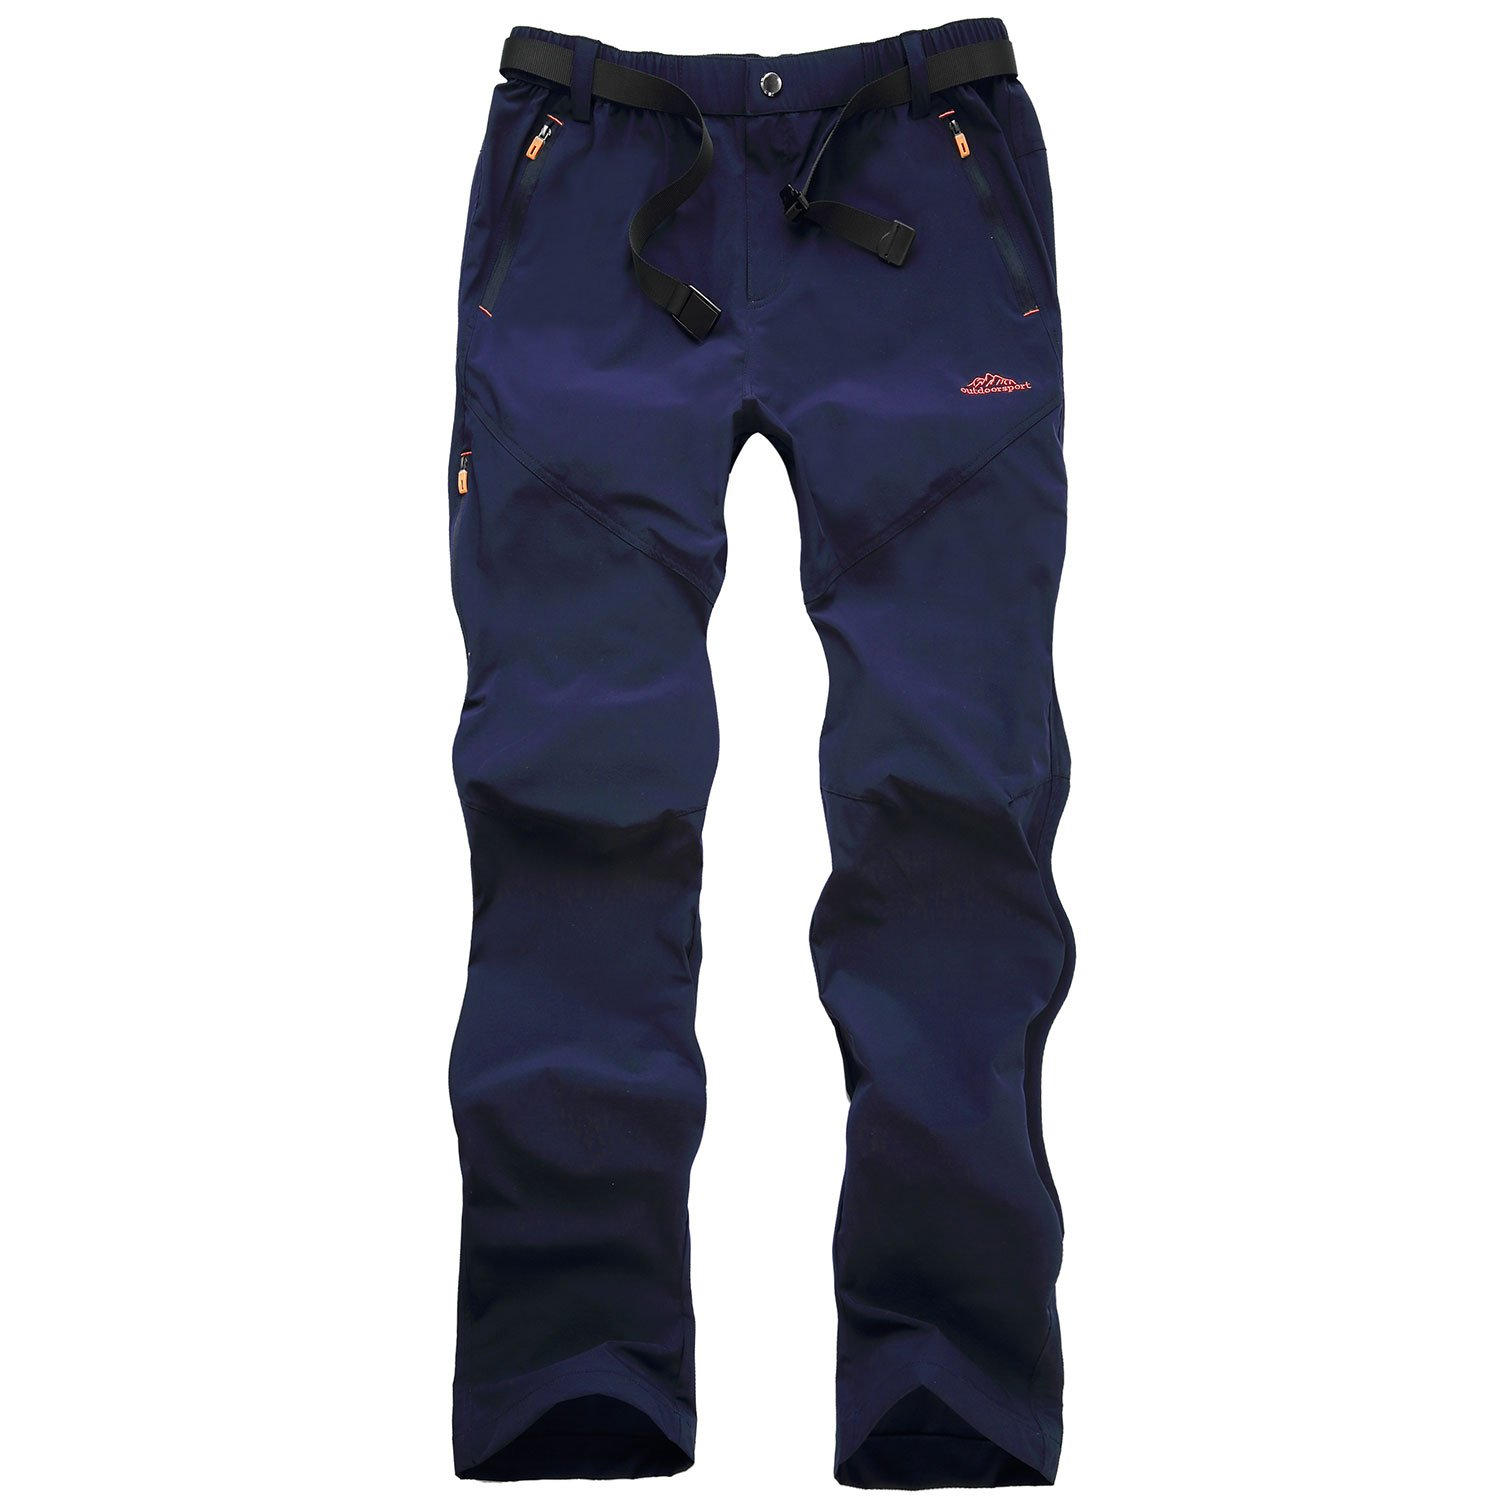 SUKUTU Men's Breathable Quick Dry Outdoor Cargo Hiking Pants Windproof Waterproof Softshell Trousers